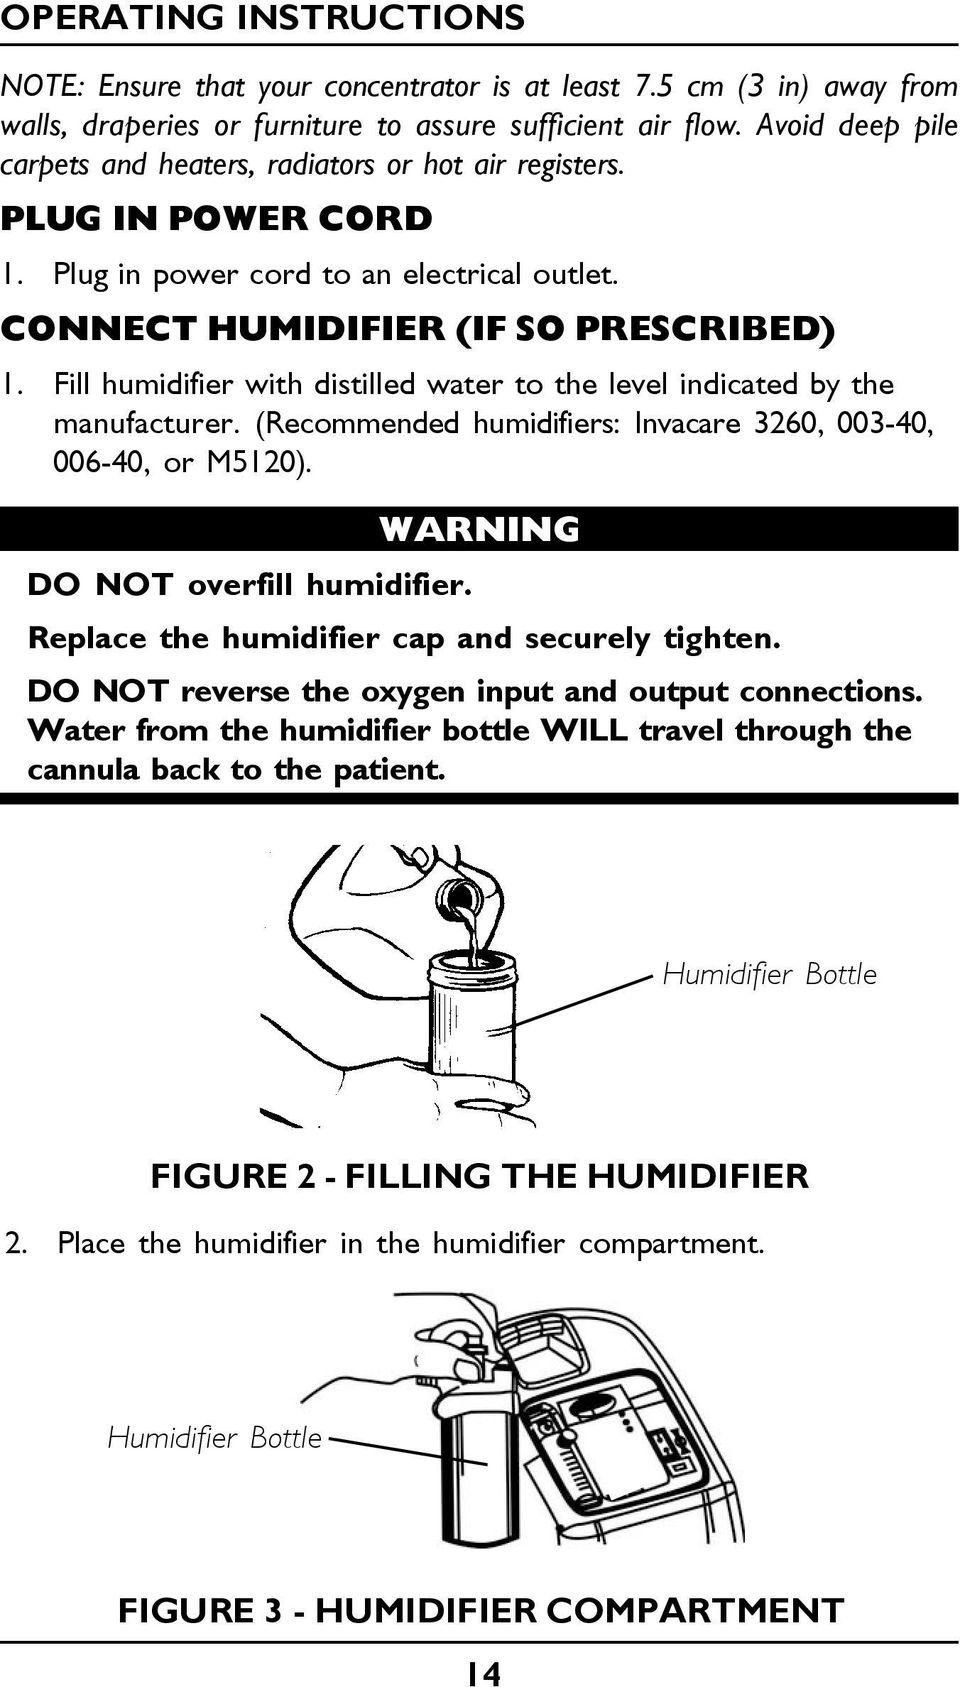 Fill humidifier with distilled water to the level indicated by the manufacturer. (Recommended humidifiers: Invacare 3260, 003-40, 006-40, or M5120). WARNING DO NOT overfill humidifier.